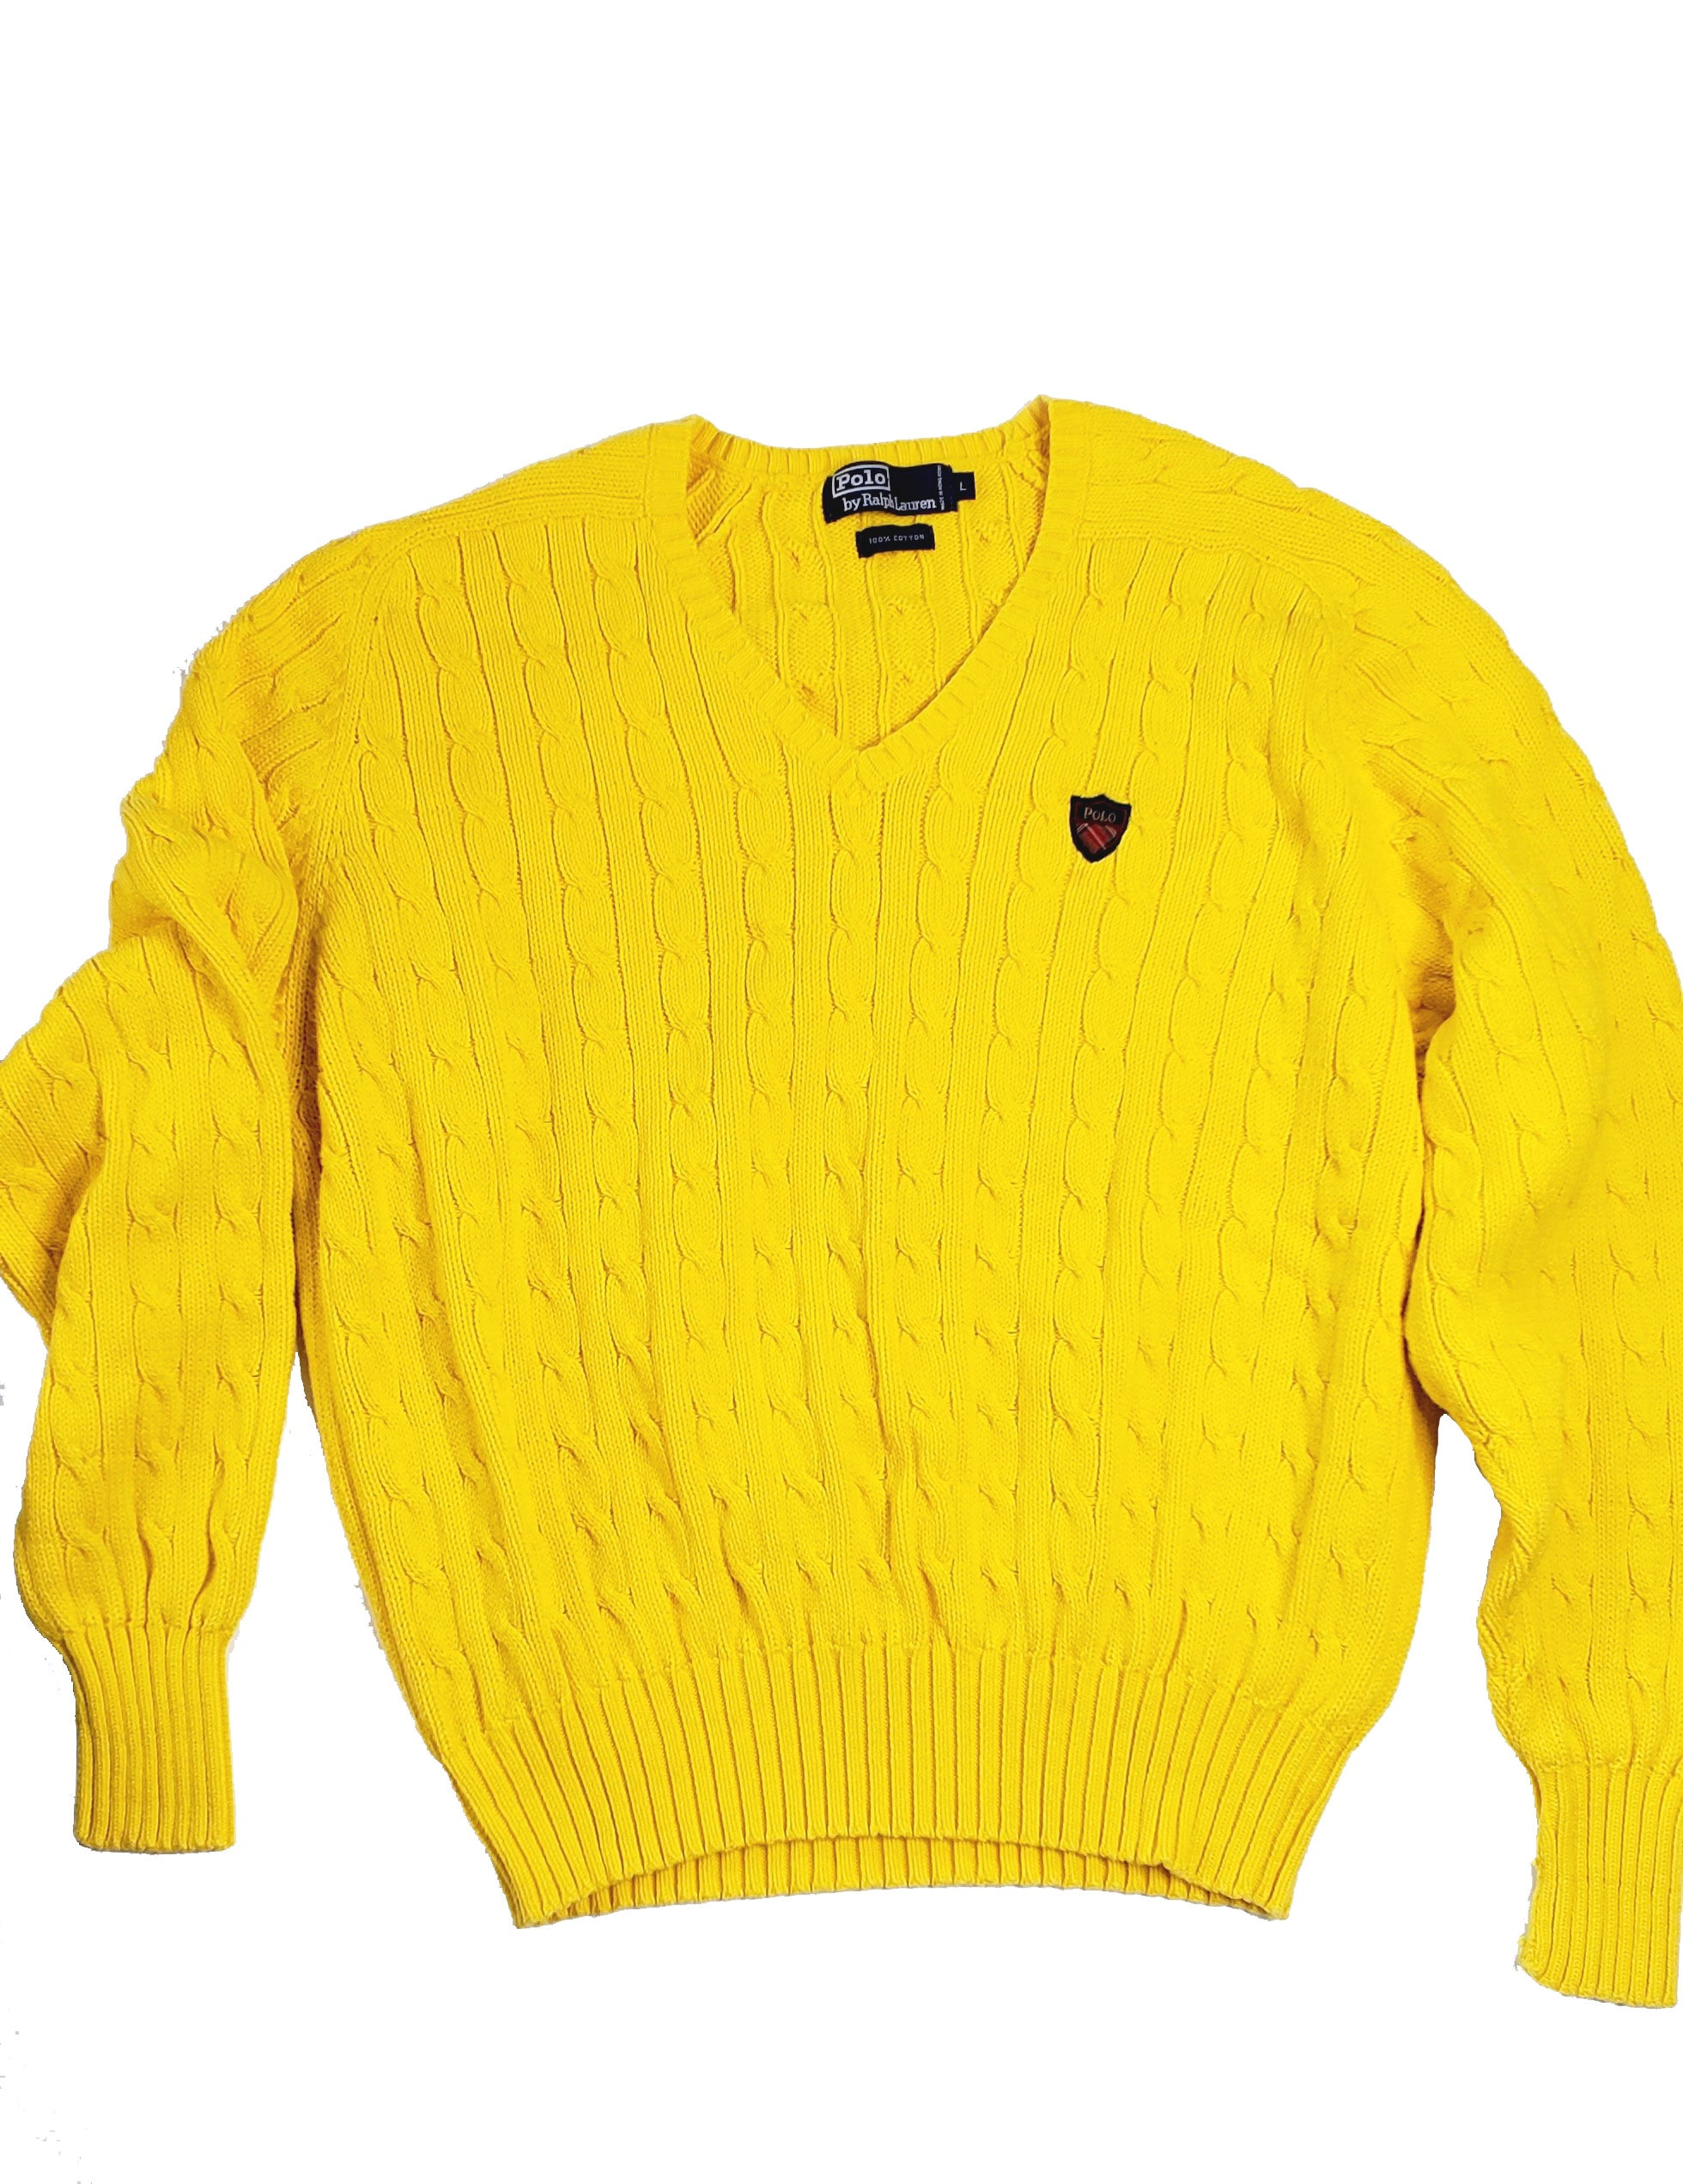 Men's Yellow Polo Cable Knit V-Neck Sweater